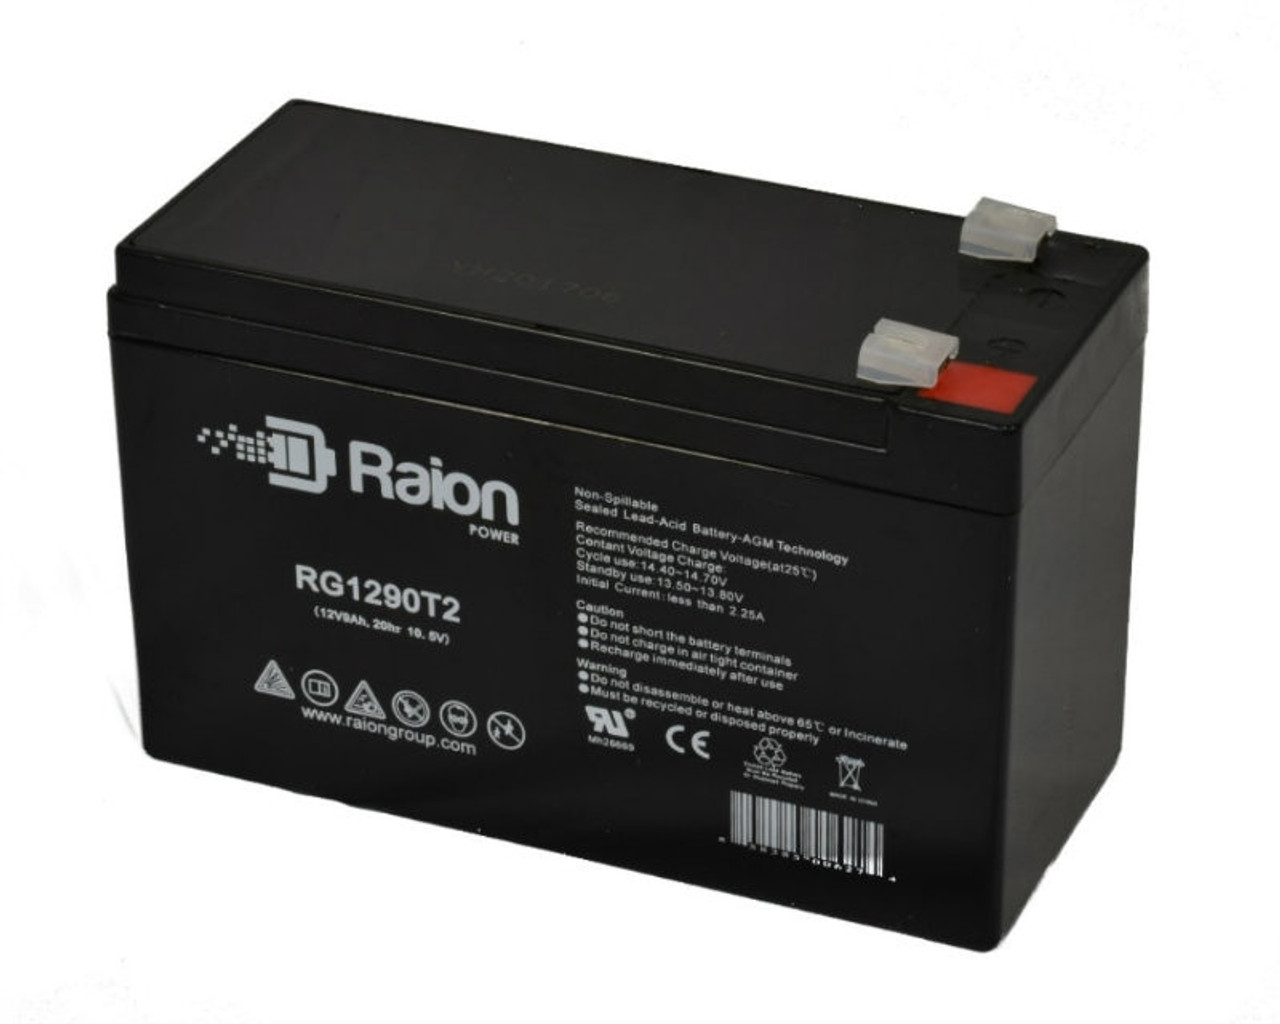 Raion Power RG1290T2 Replacement Battery for Potter Electric PFC-5002RG1290T2 Fire Alarm Control Panel